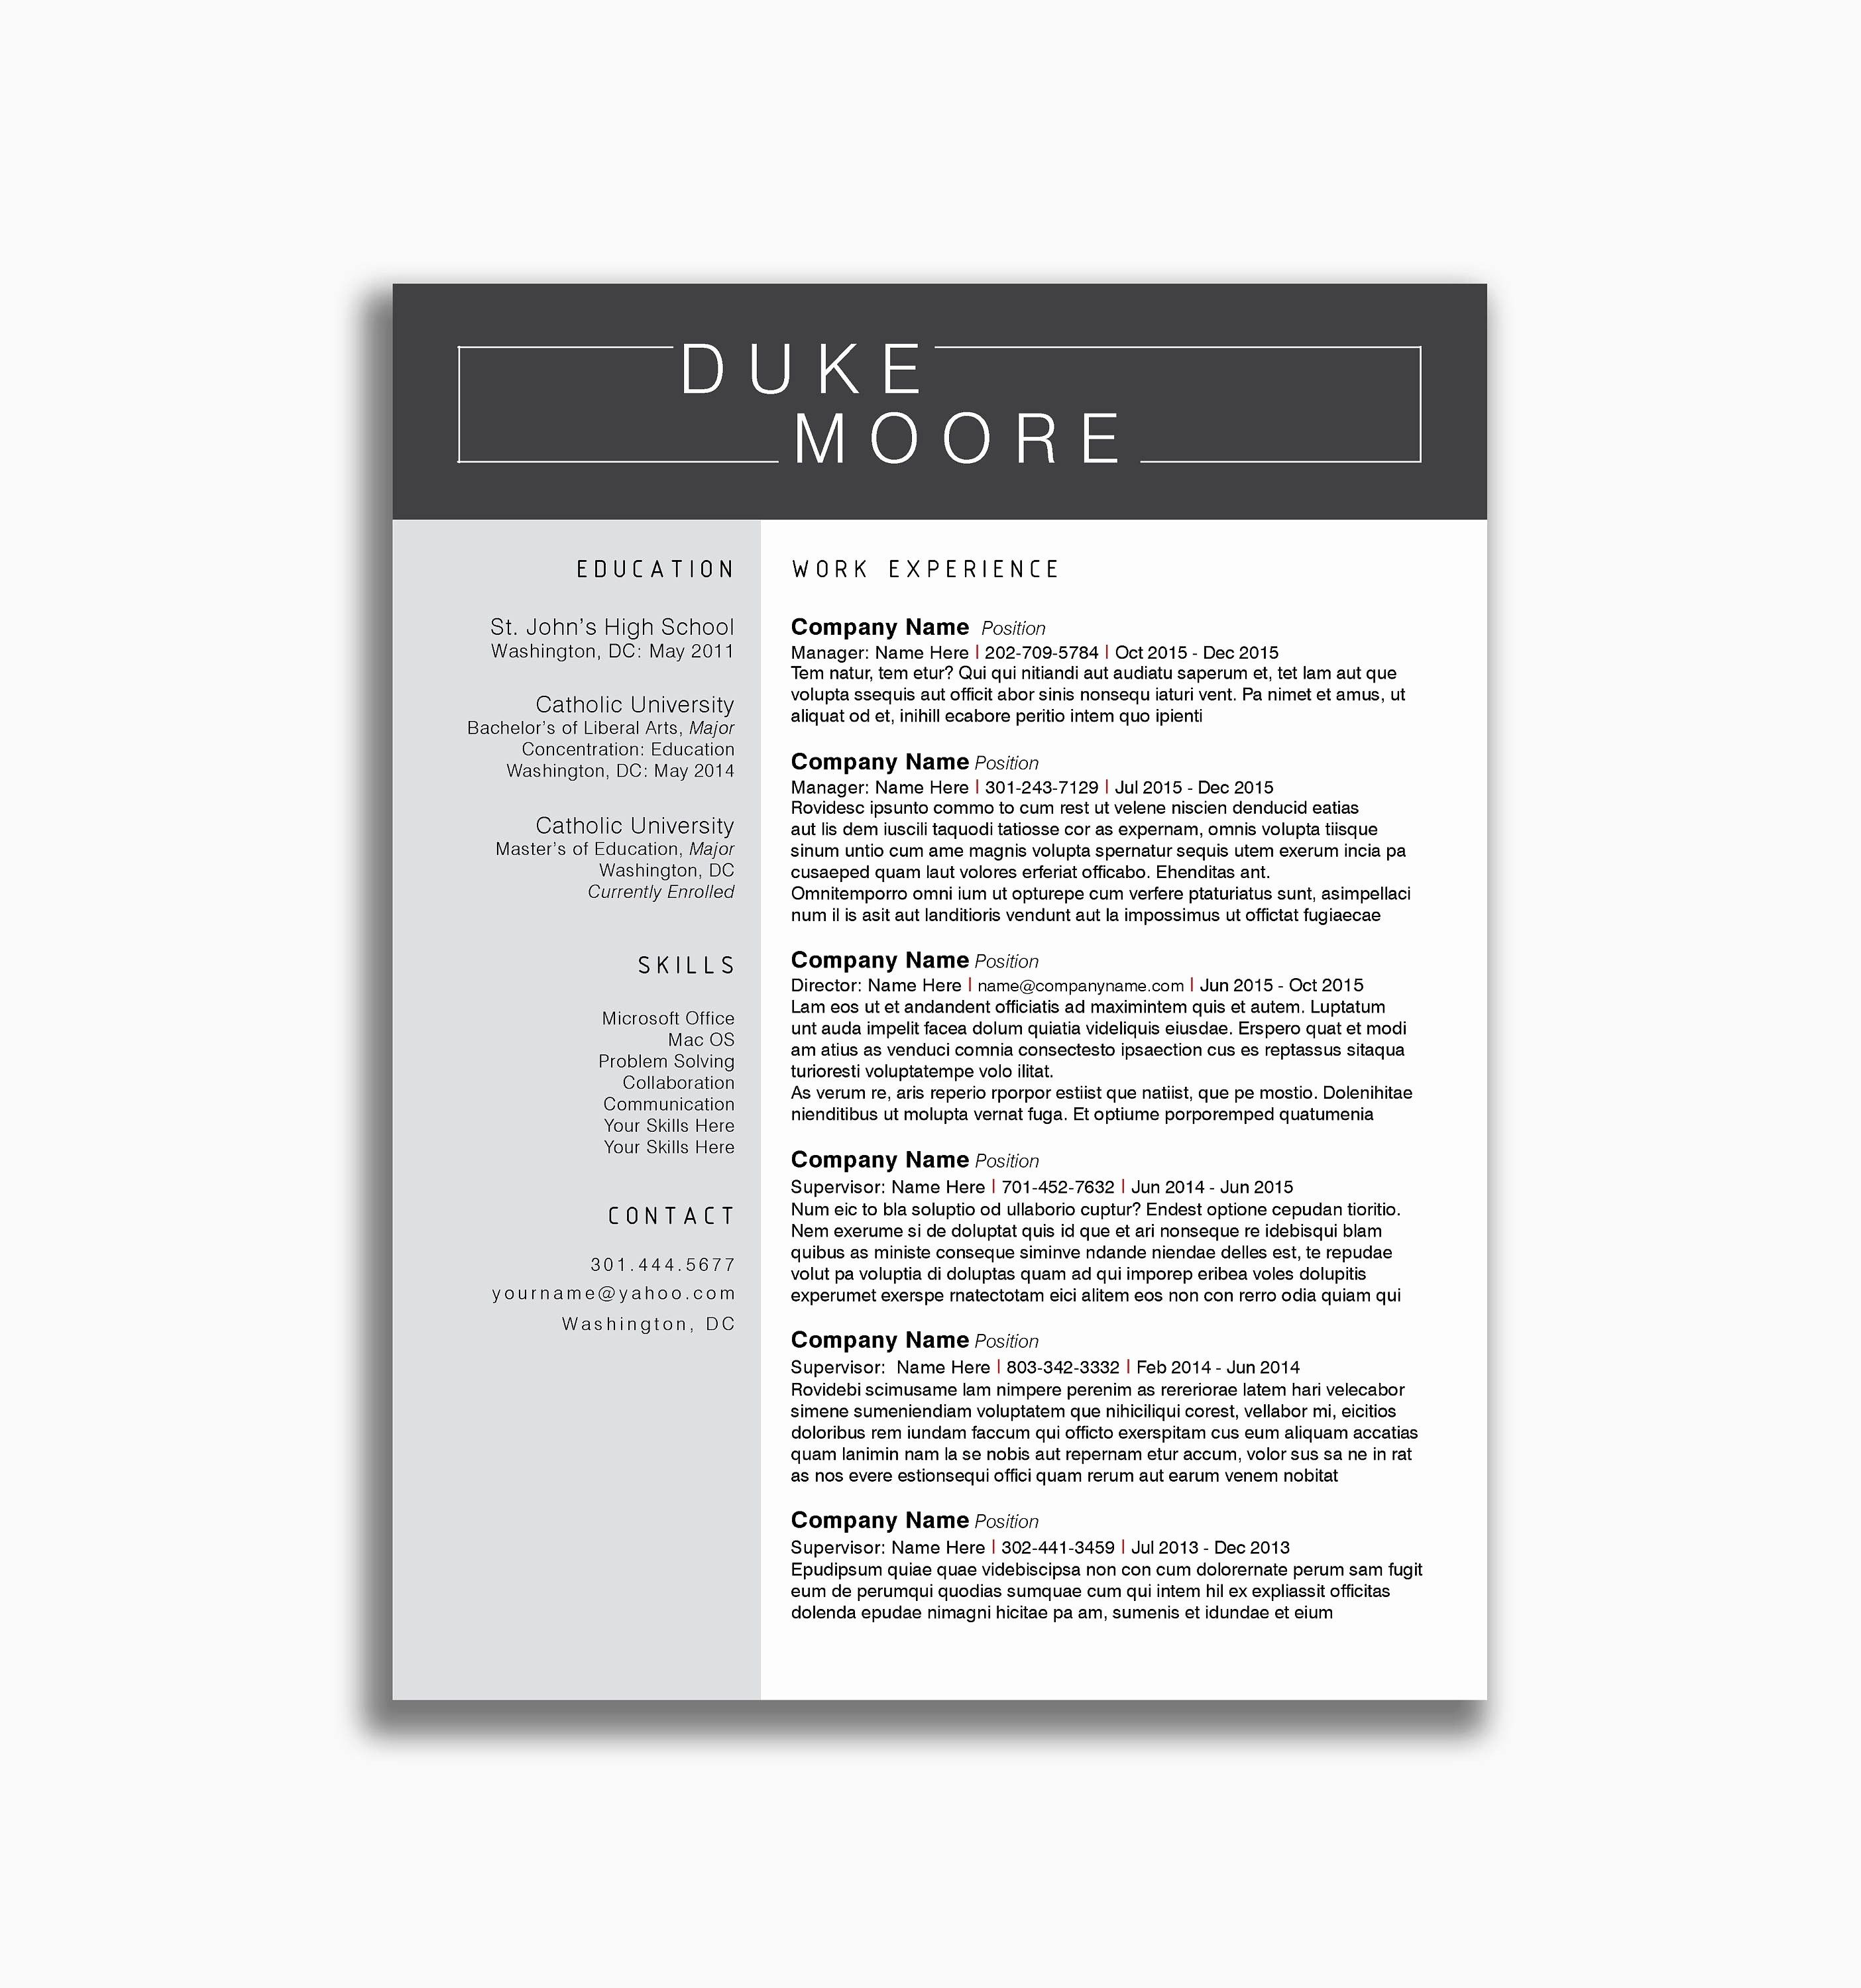 76 Awesome Photos Of Nursing College Student Resume Examples Resume Skills Resume Examples Best Resume Template